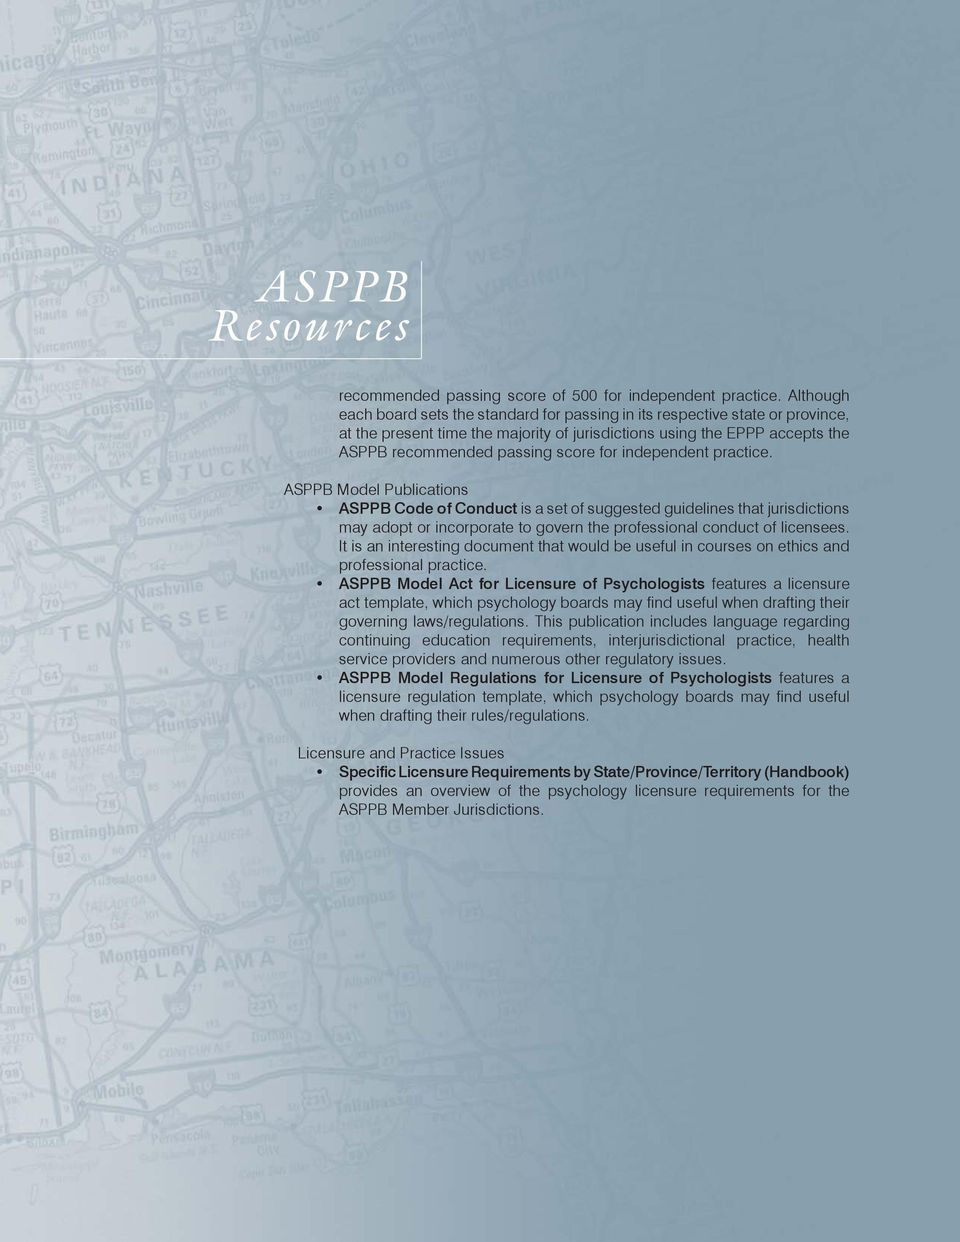 independent practice. ASPPB Model Publications ASPPB Code of Conduct is a set of suggested guidelines that jurisdictions may adopt or incorporate to govern the professional conduct of licensees.